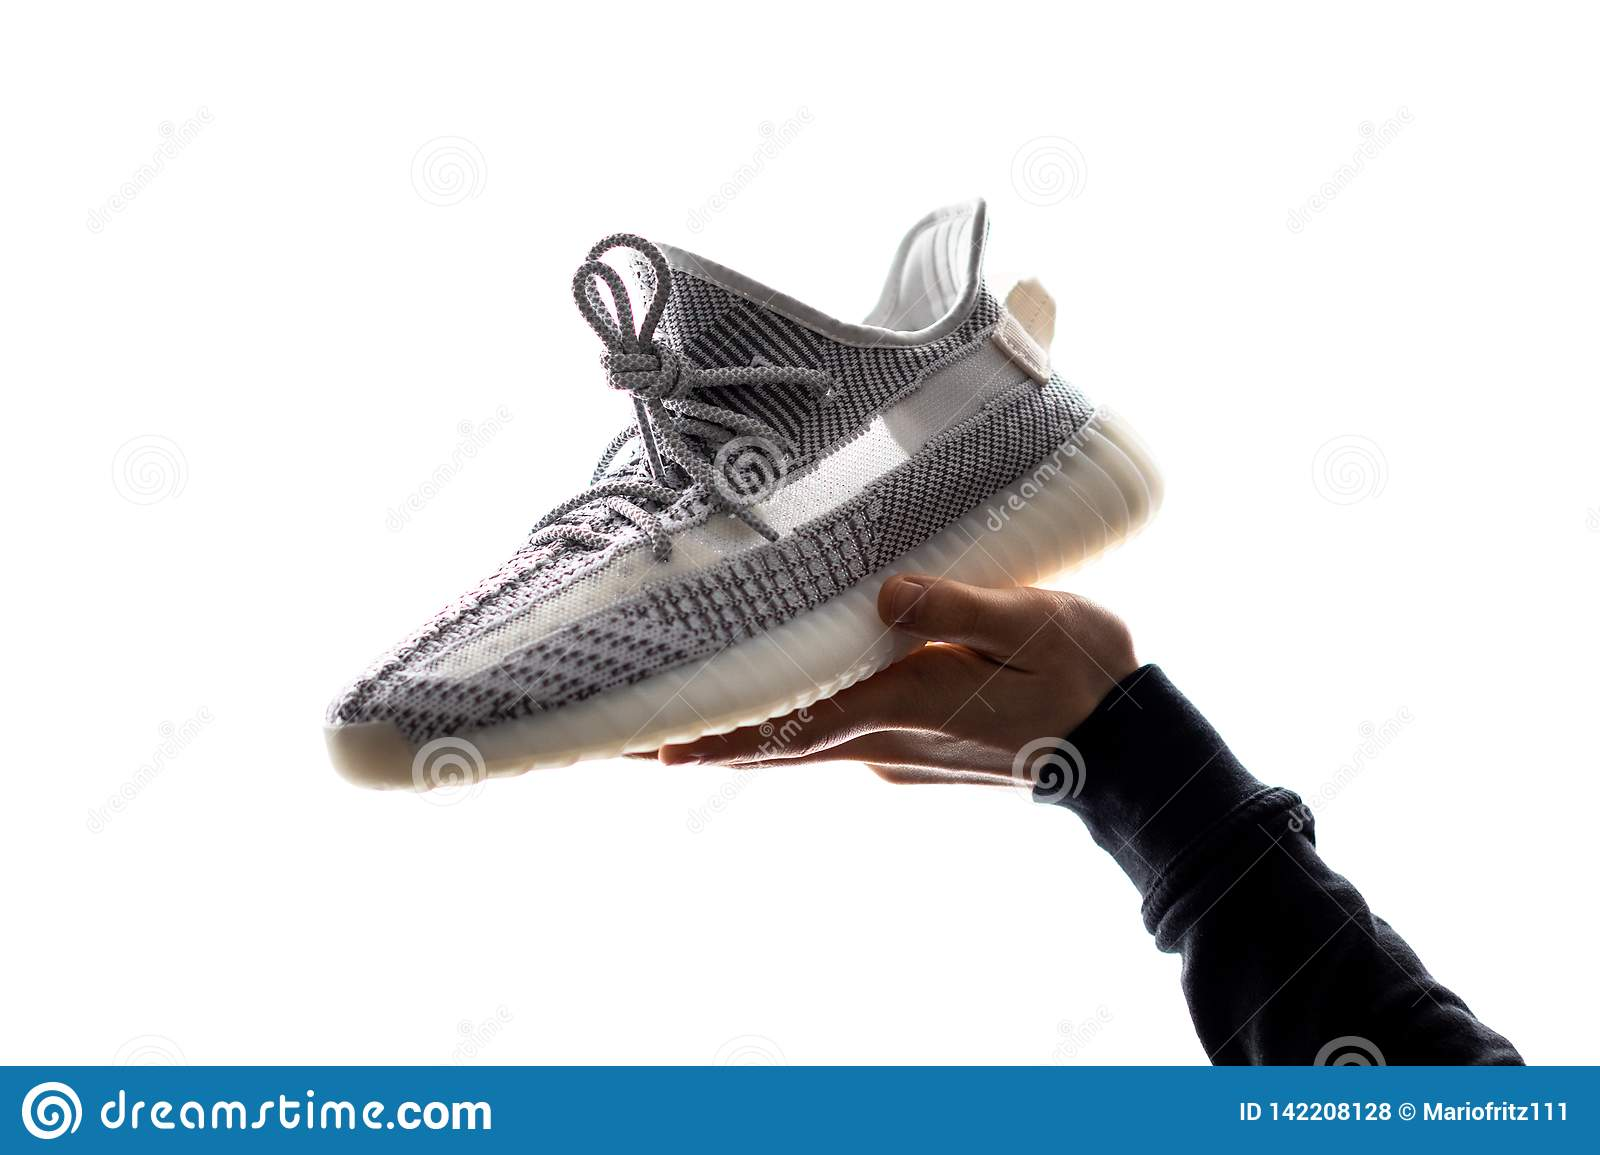 c23a50a1 One Hand Holds A Adidas Yeezy 350 V2 Static In Its Hand.. Released ...